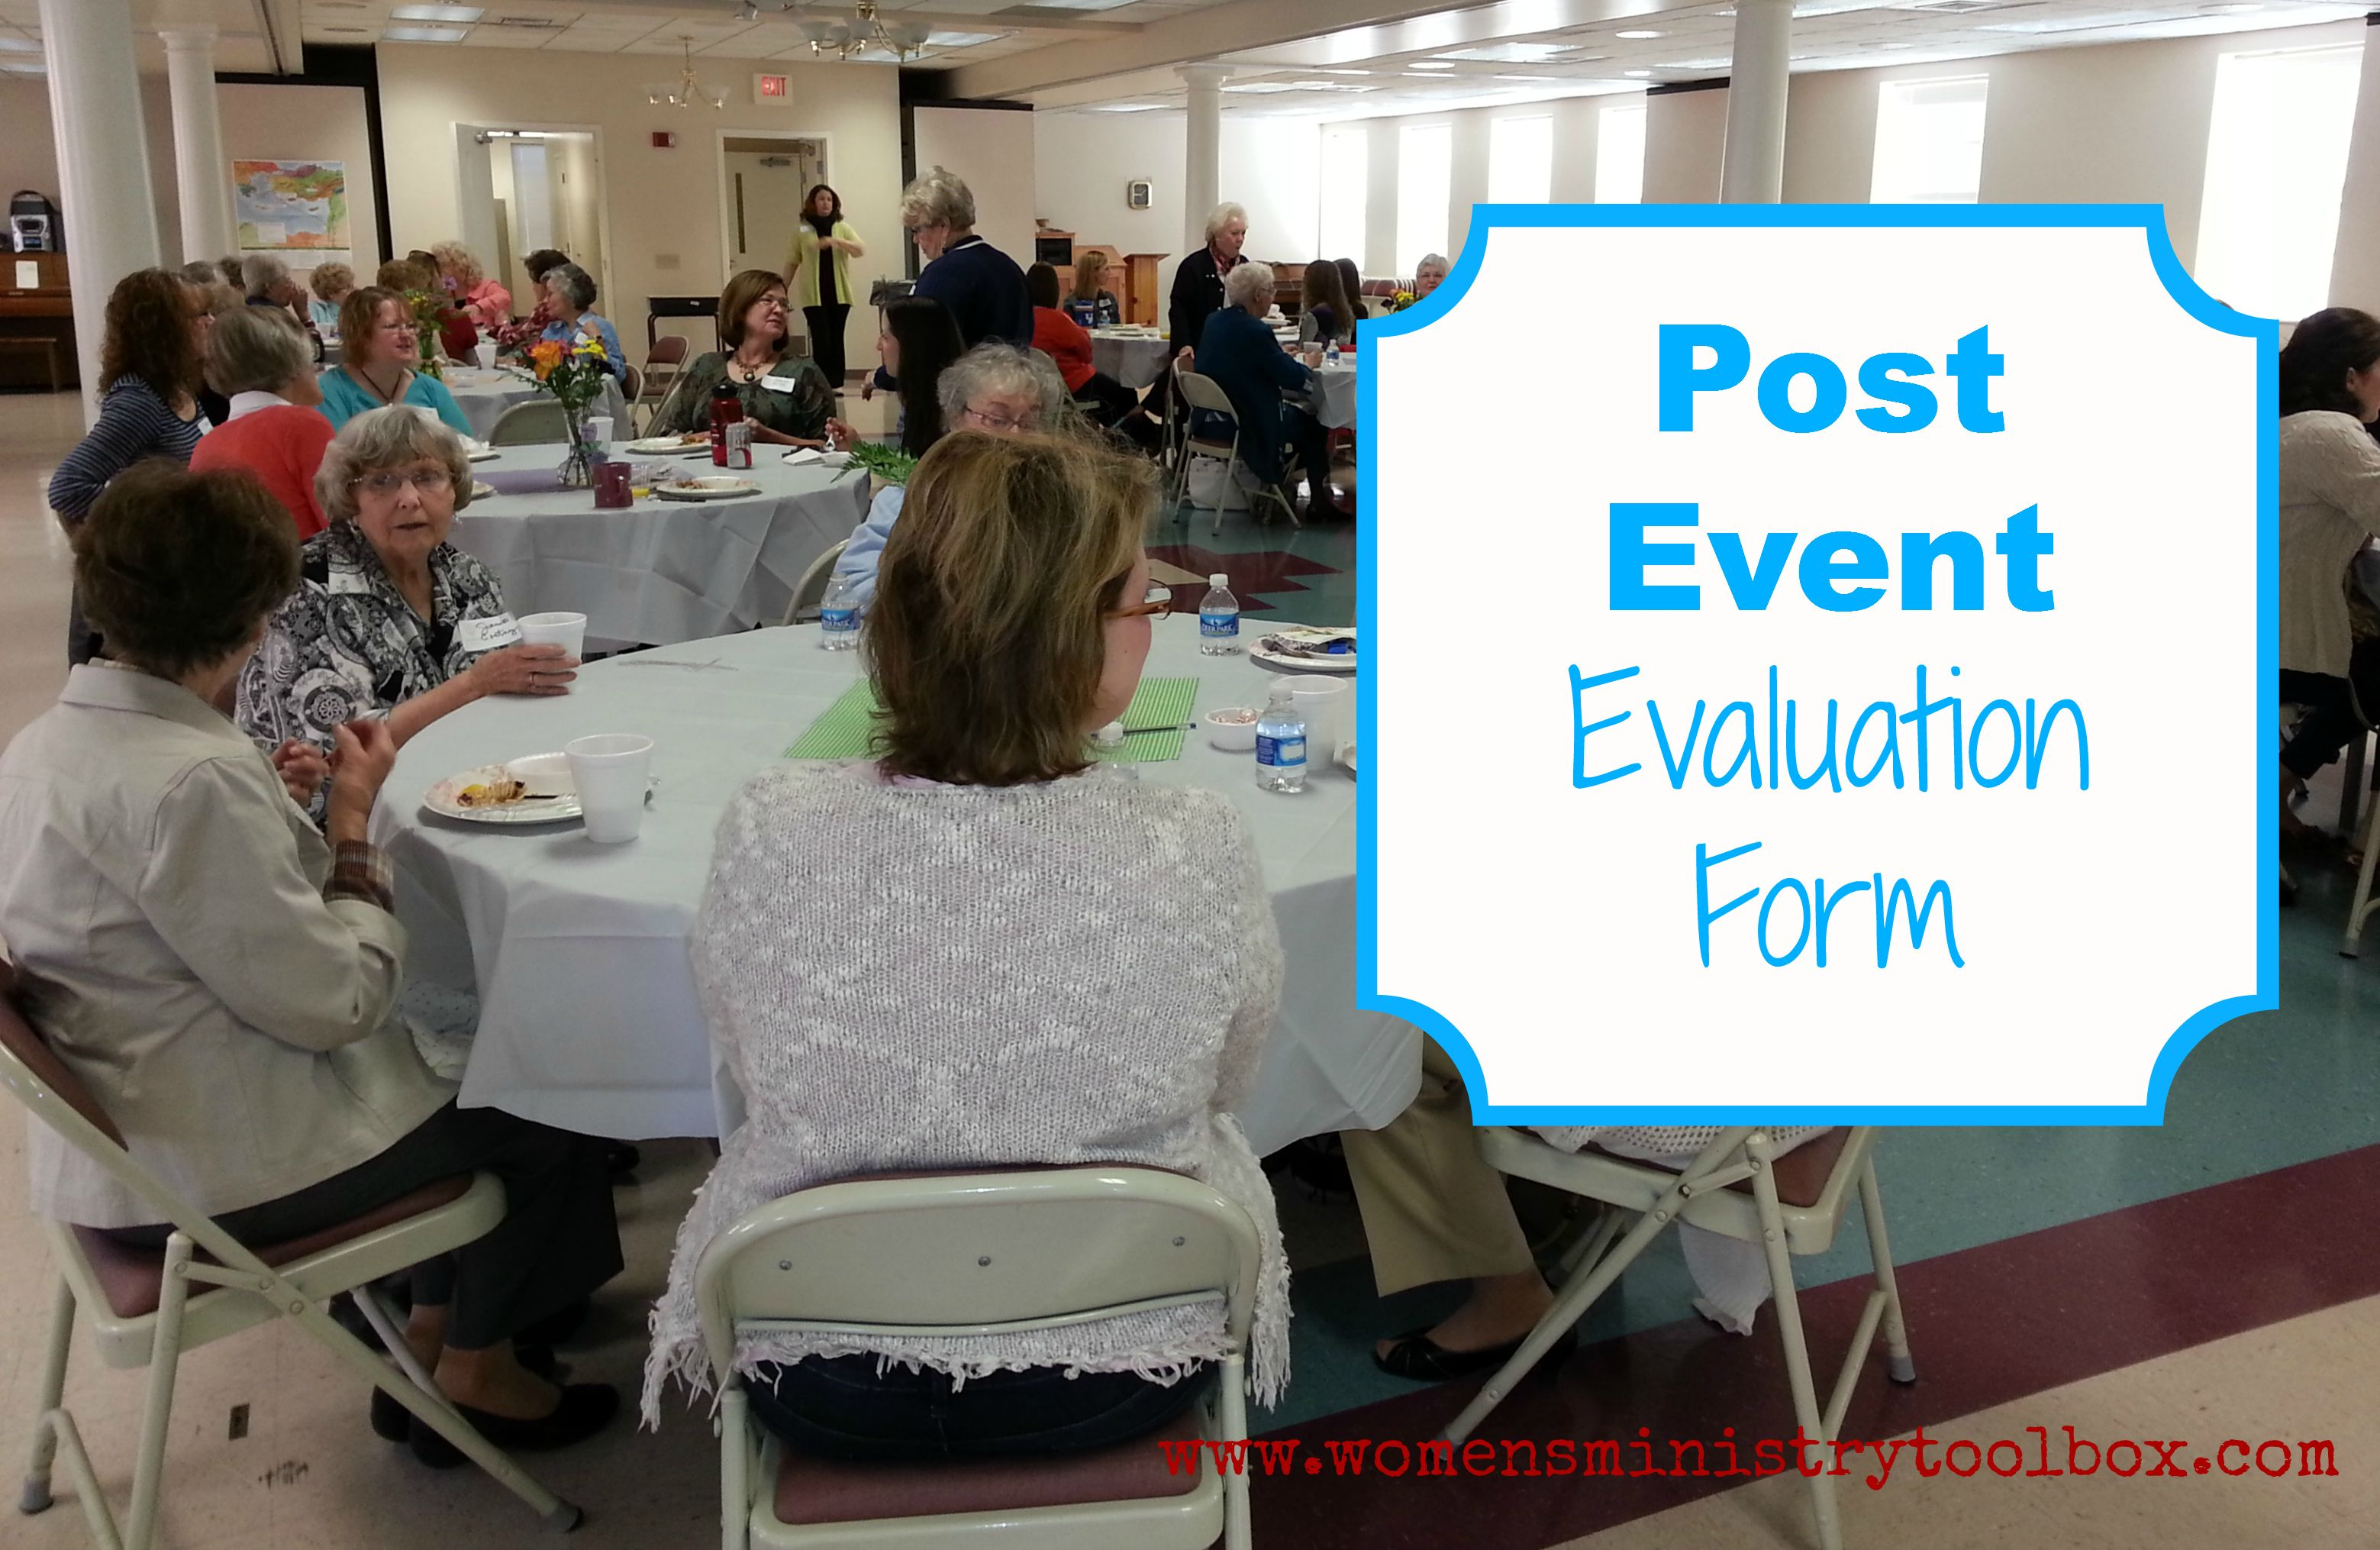 Post Event Evaluation Form Free Printable – Event Evaluation